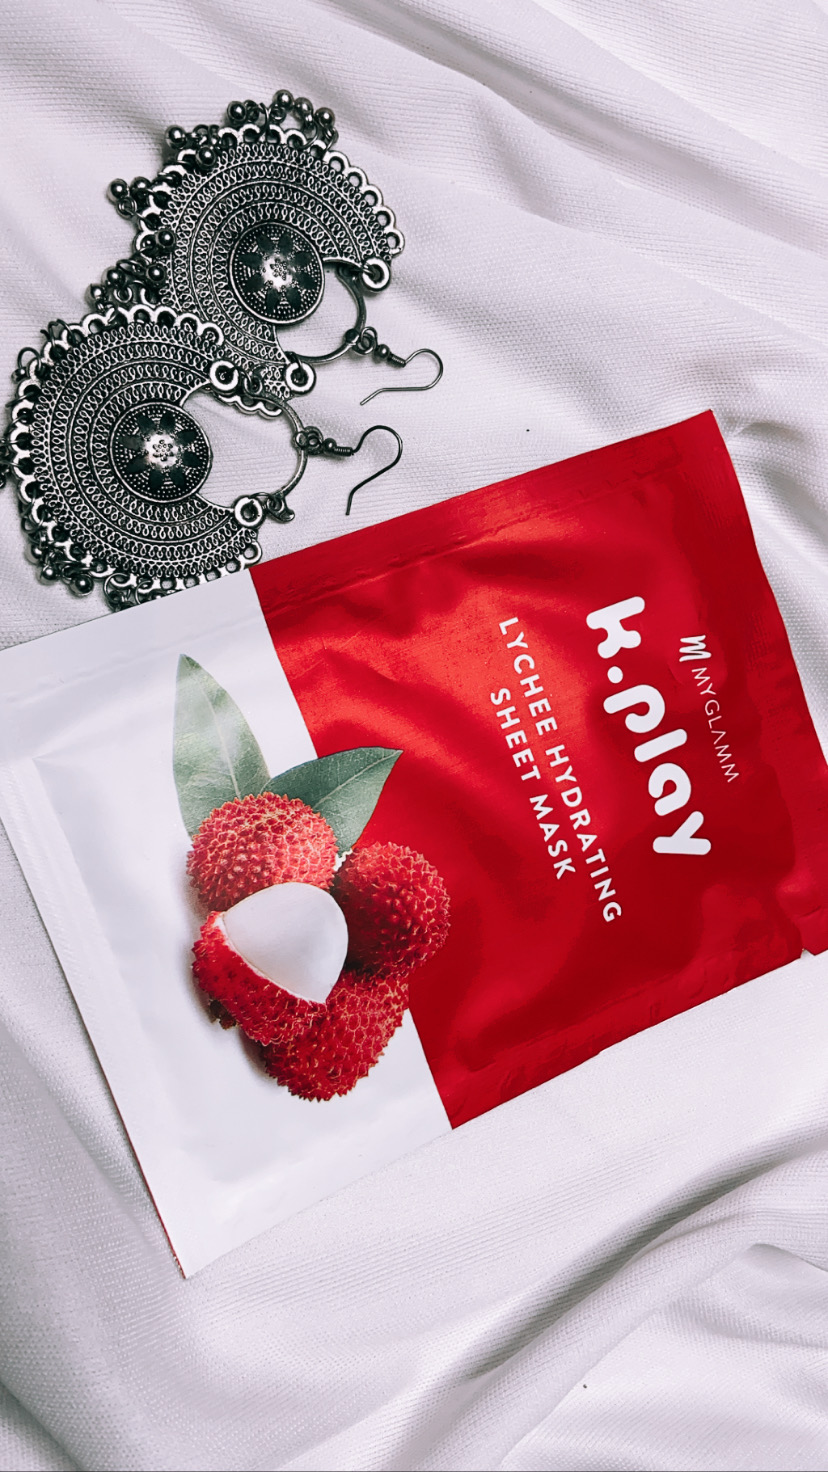 MyGlamm K.Play Lychee Hydrating Sheet Mask -Hydrates and heals-By theuntamedspirit